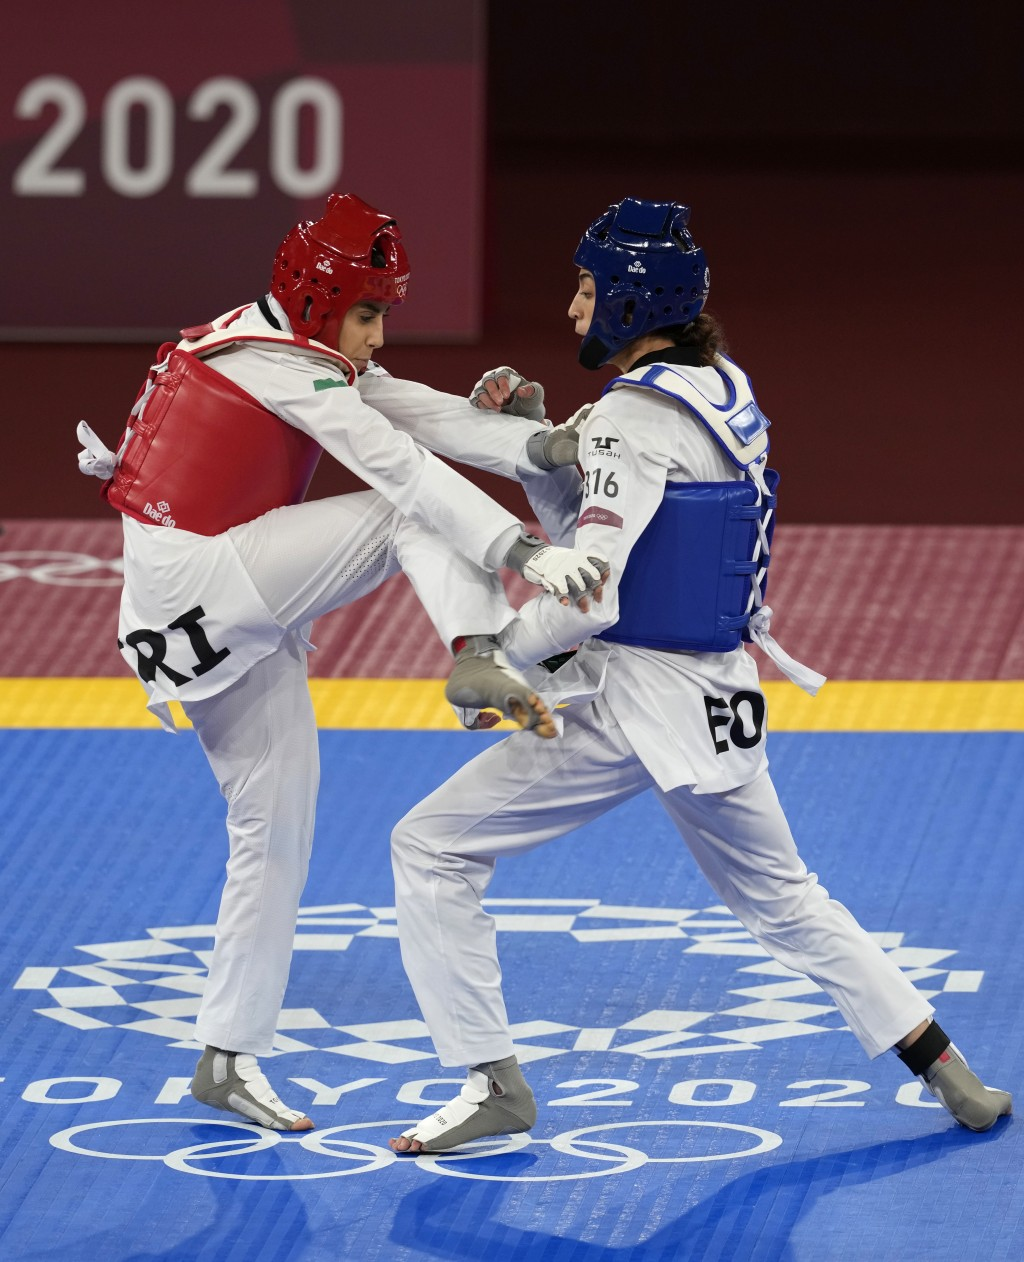 Iran's Nahid Kiyani, left, attacks Kimia Alizadeh Zonoozi, of the Refugee Olympic Team, during the women's 57kg match at the 2020 Summer Olympics, Sun...